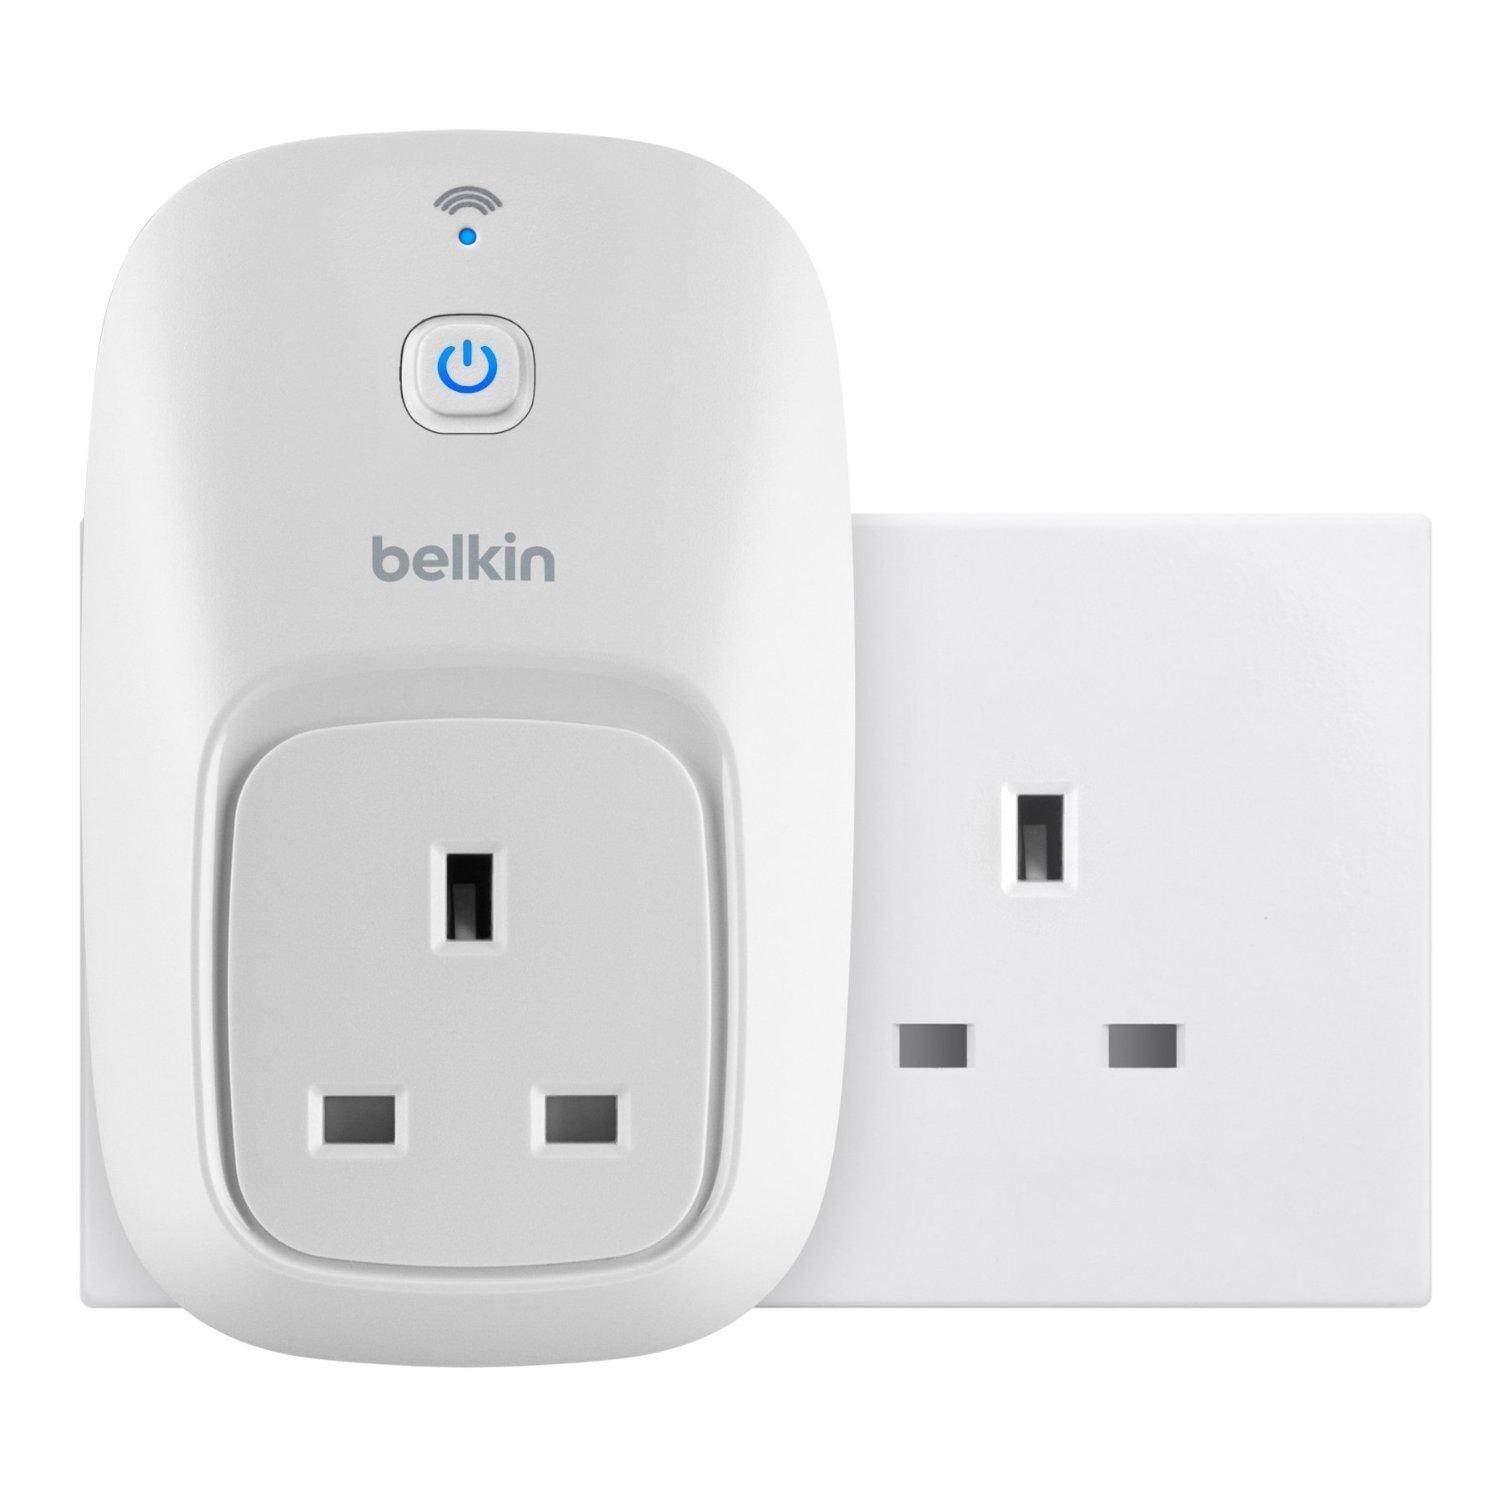 belkin wemo f7c027uk switch smart plug wi fi smart plug. Black Bedroom Furniture Sets. Home Design Ideas